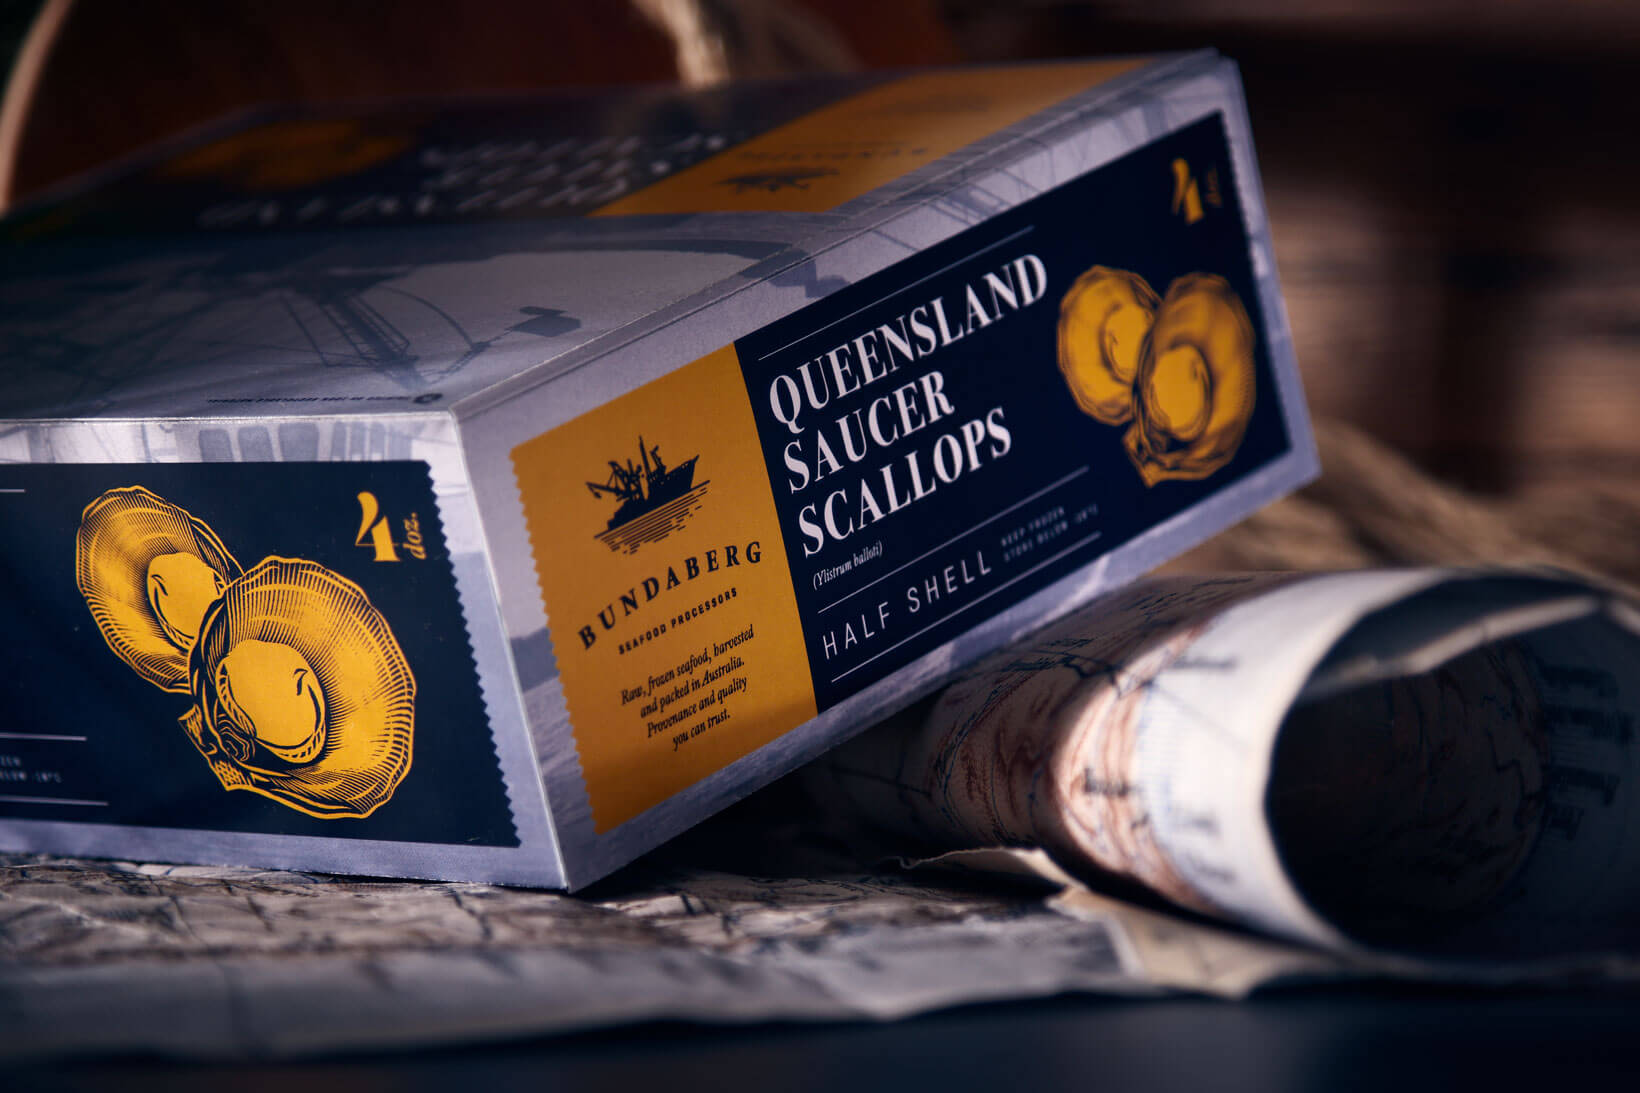 Packaging and branding design for seafood products